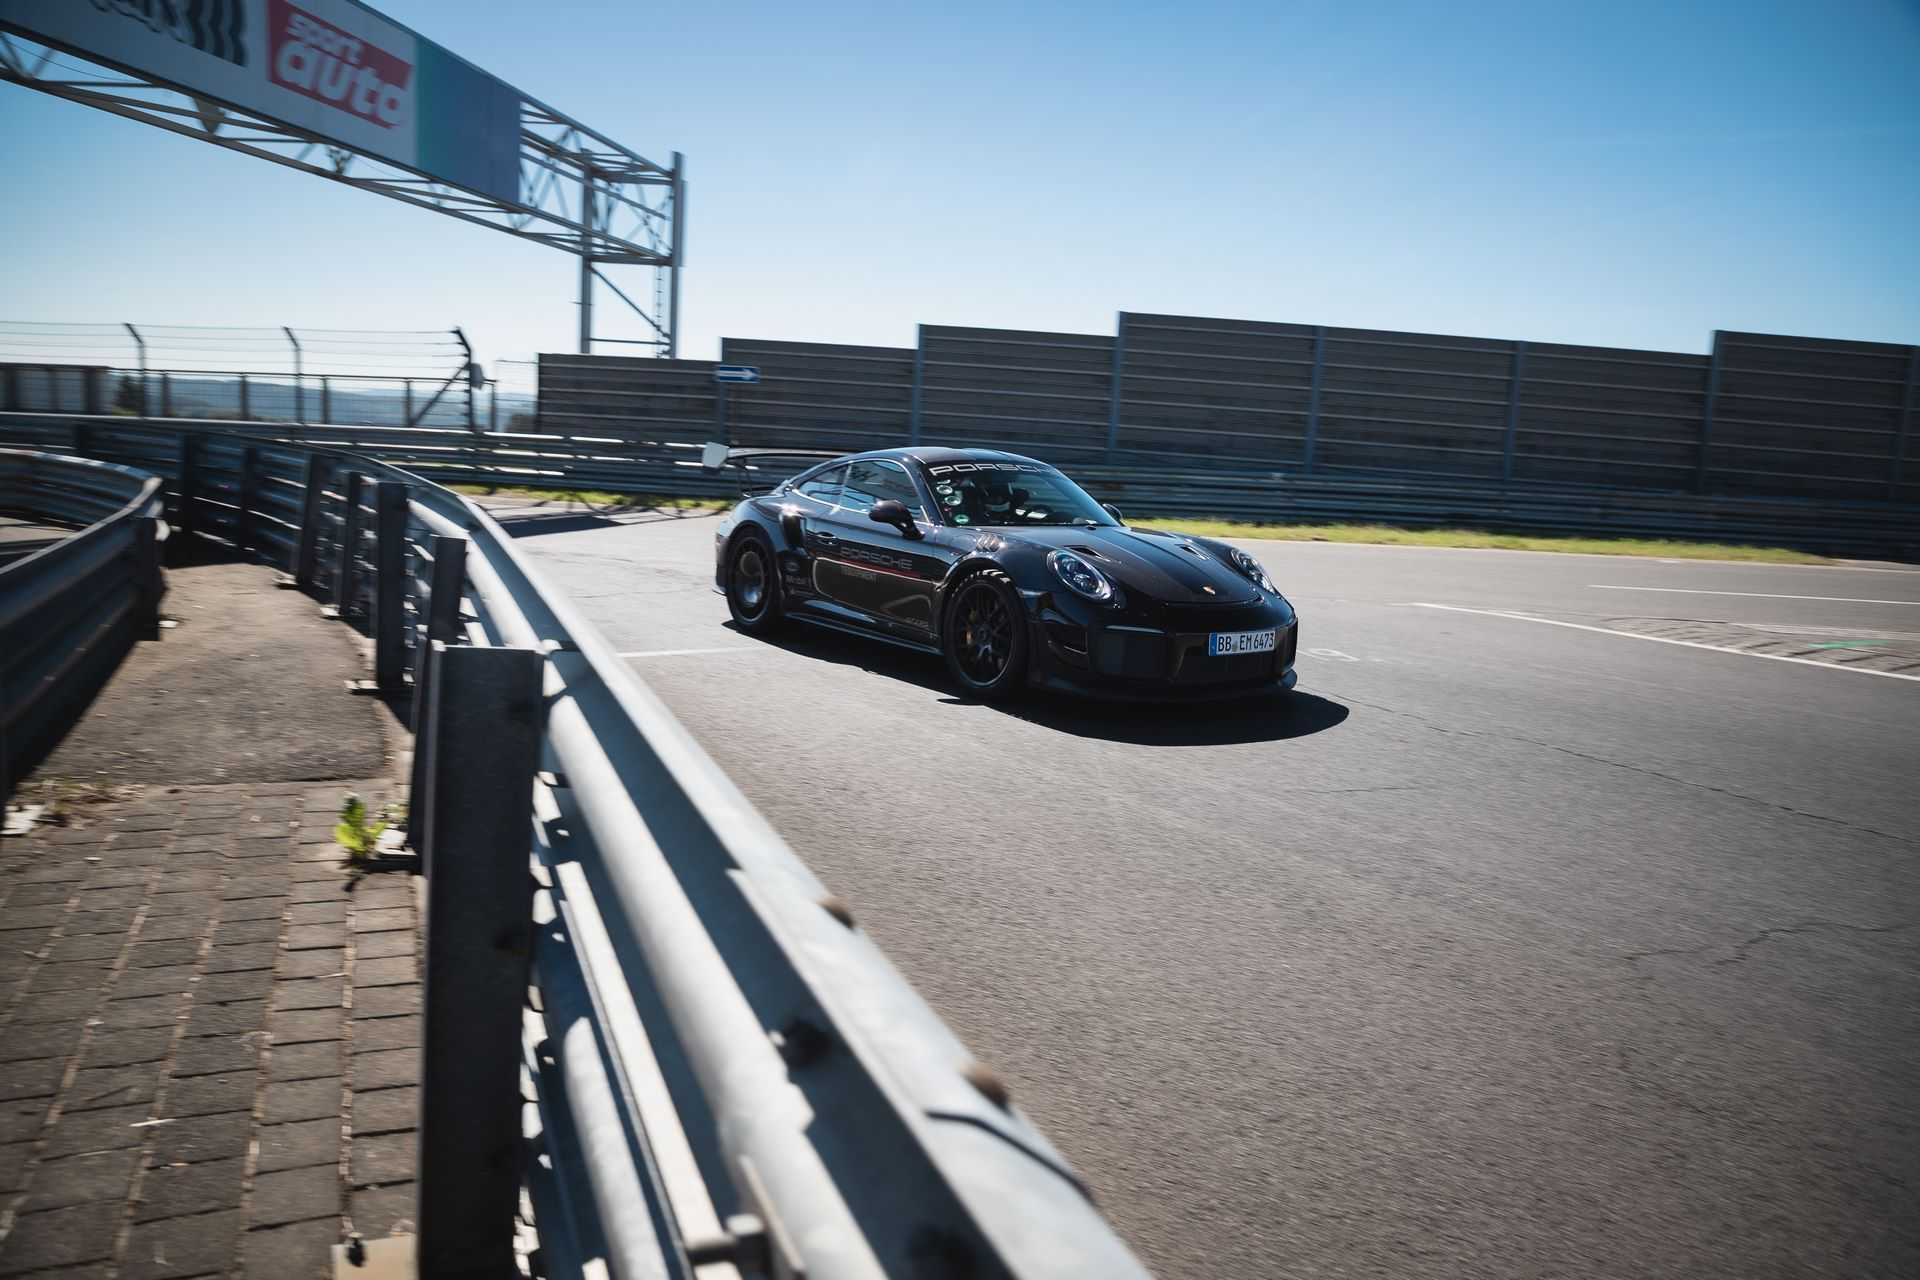 Porsche-911-GT2-RS-Manthey-Performance-Kit-Nurburgring-Record-6